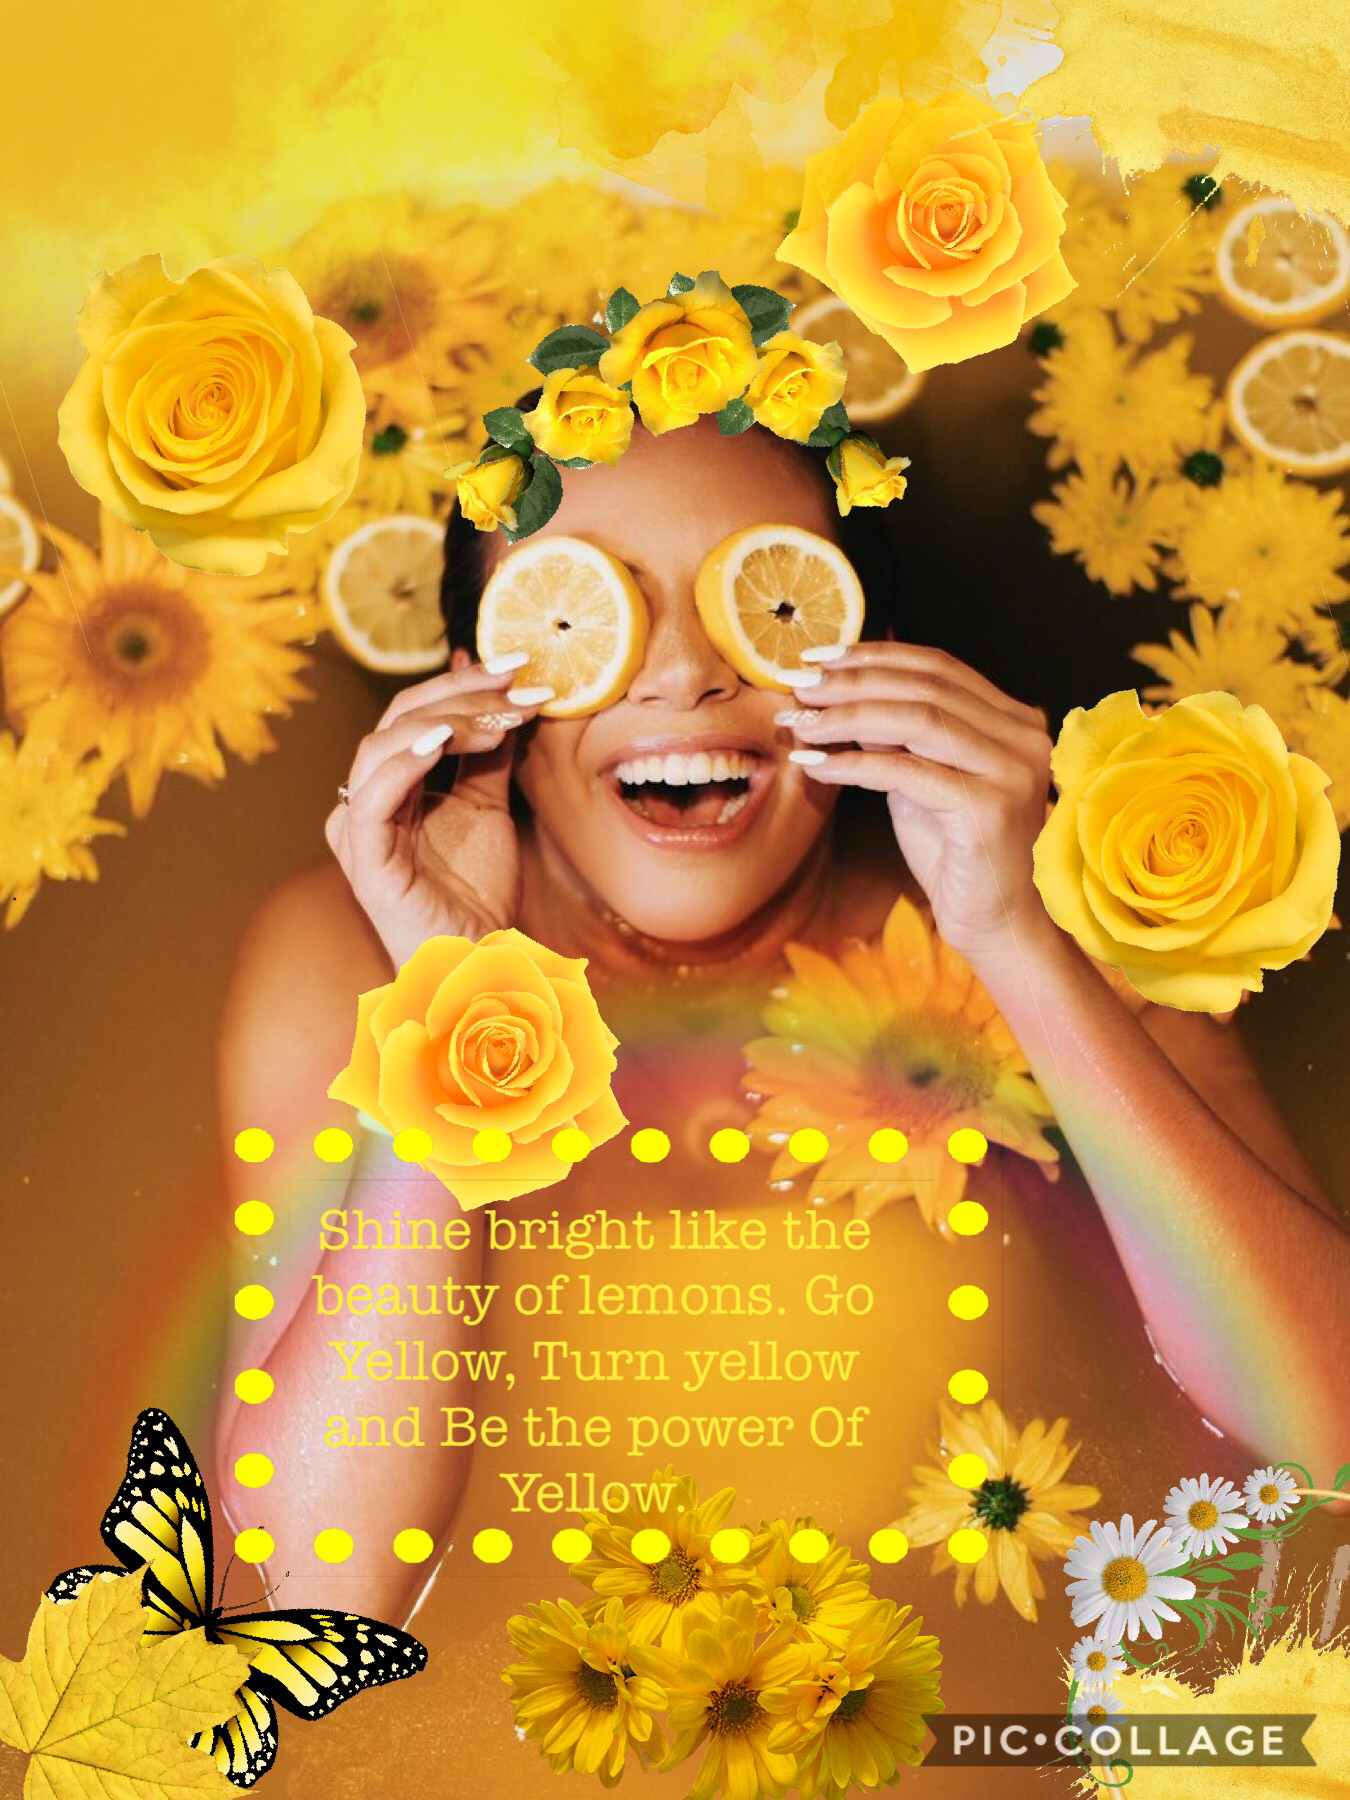 Decided to post this one of Adelaine Morin that I just created. Go subscribe to her YouTube which is Adelaine Morin she is the best. I am really into yellow lately so I decided to do this. Comment some celebs you want me to do collages on.